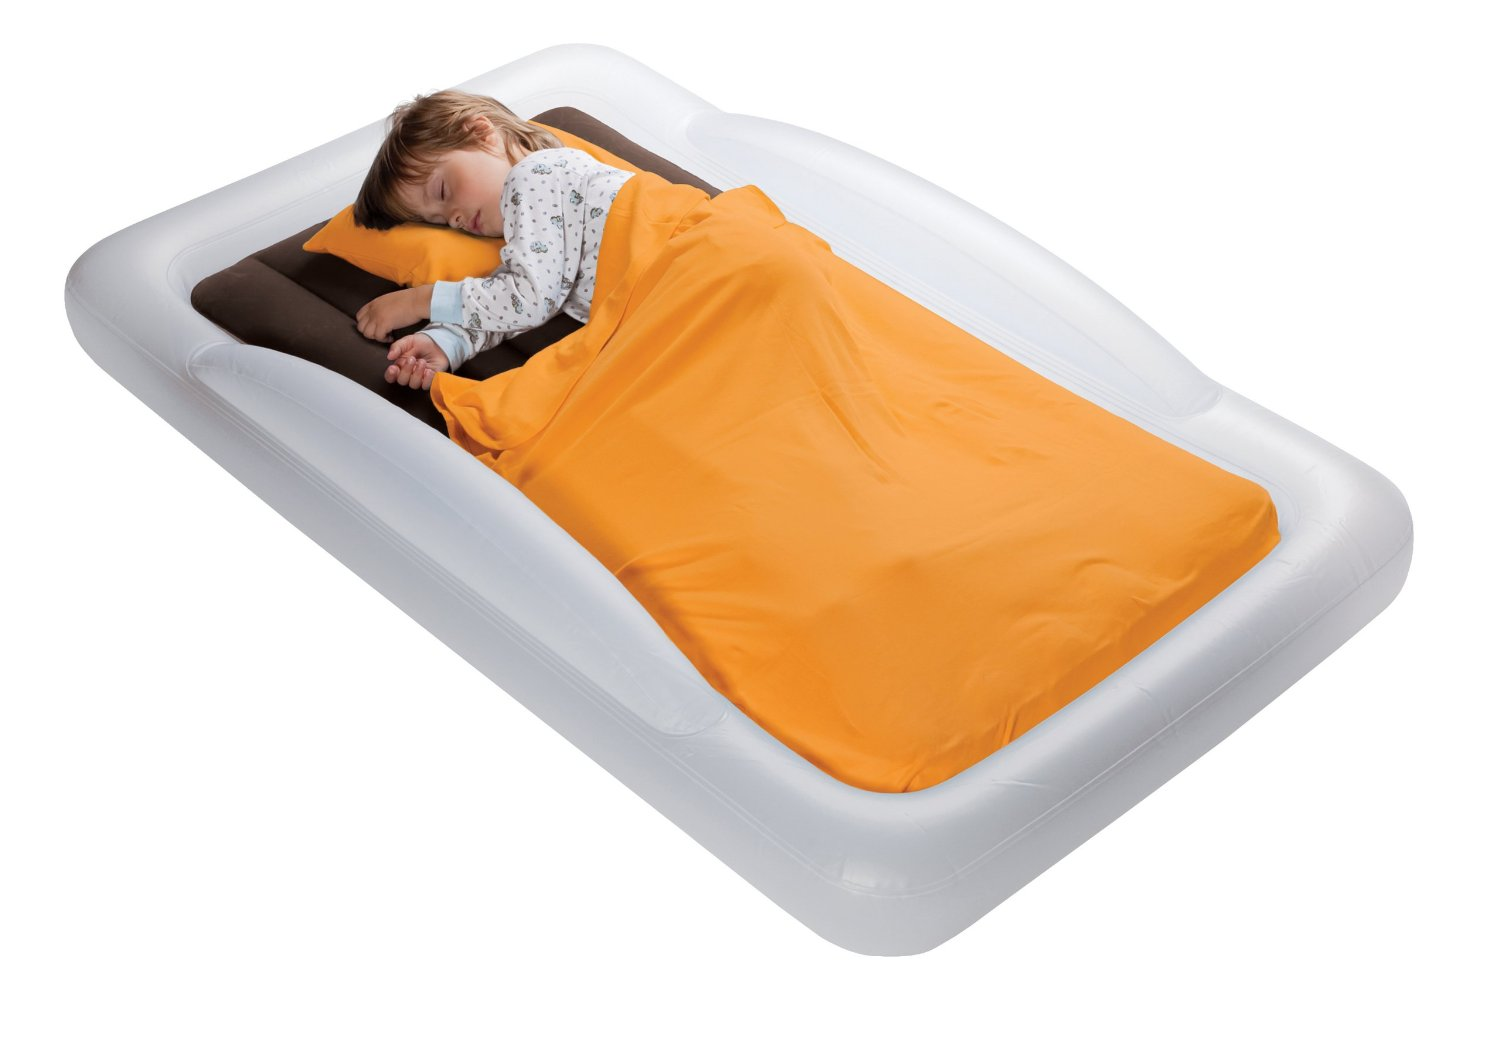 Small child's inflatable travel bed